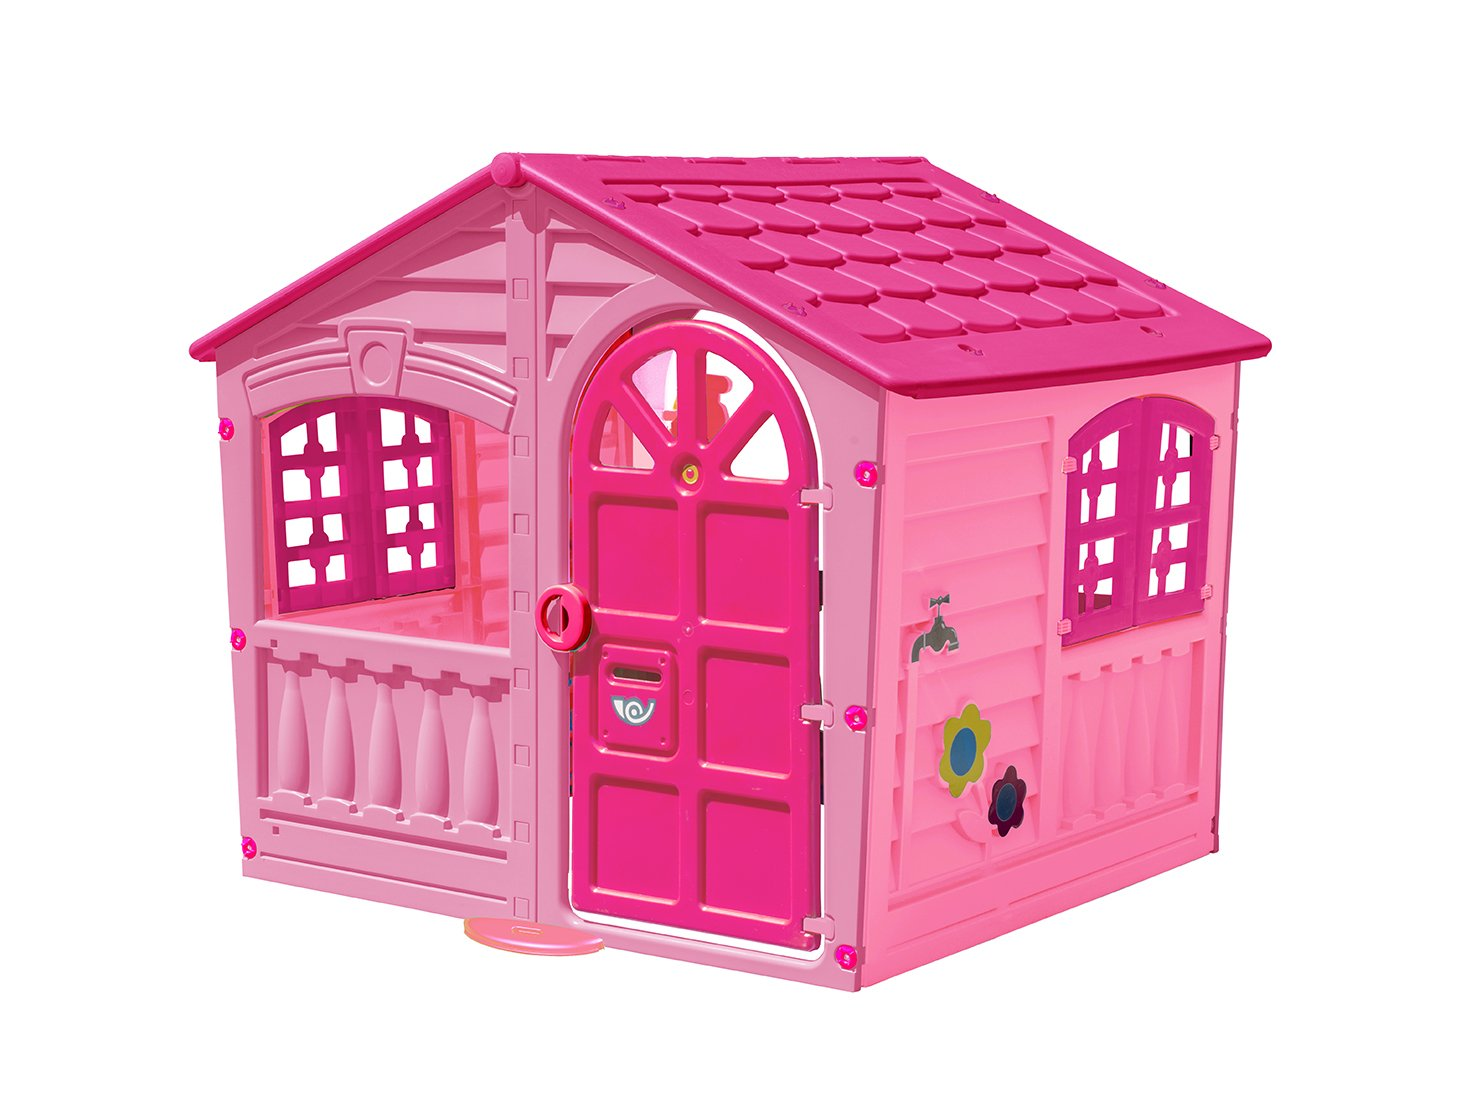 Amazon.com: Palplay Kids Outdoor Playhouse - Colorful Pink & Purple ...